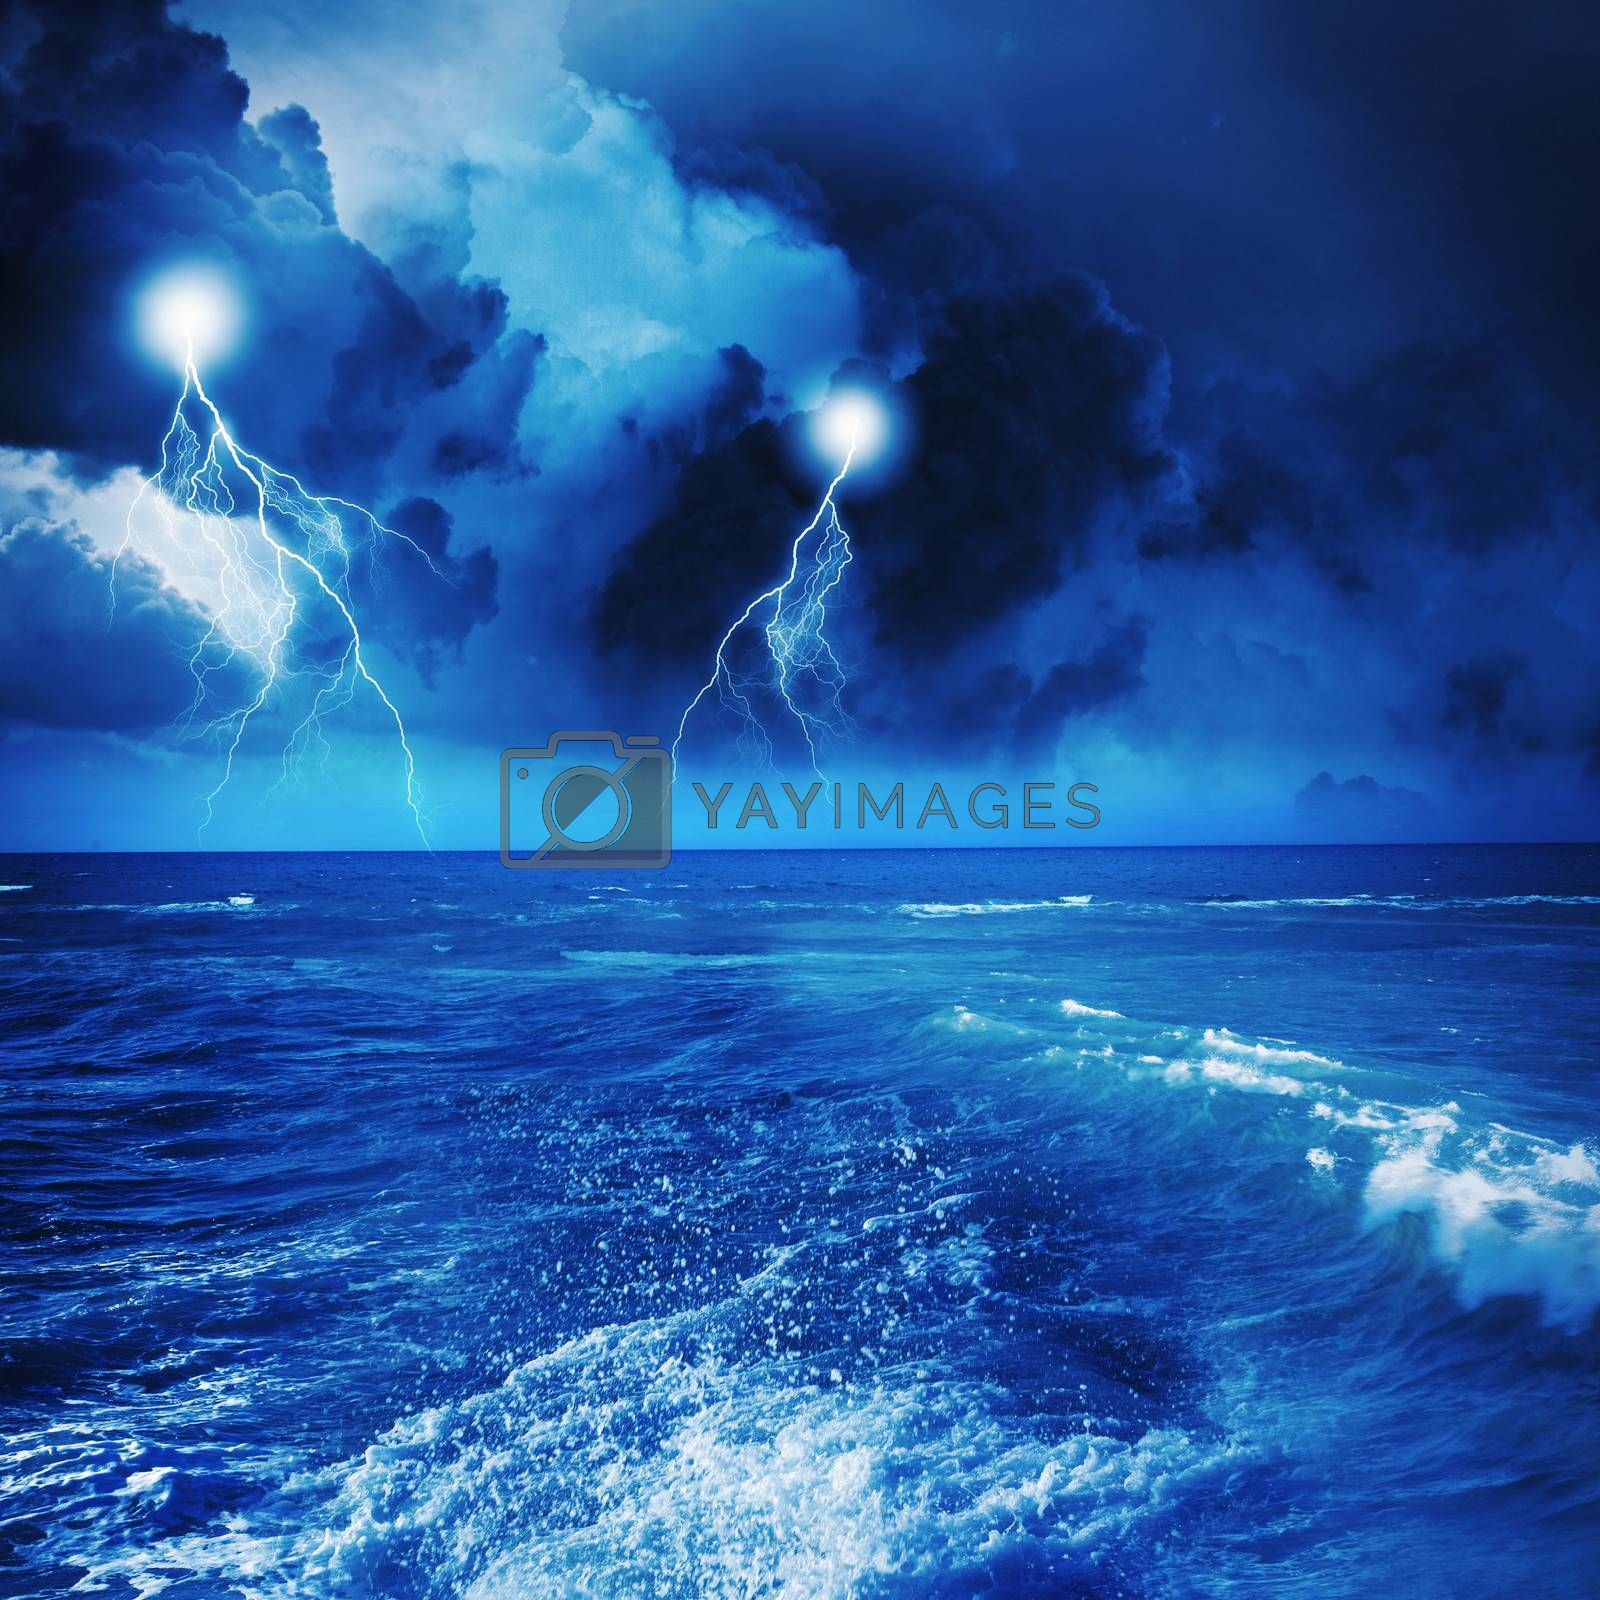 Royalty free image of Storm at night by sergey_nivens